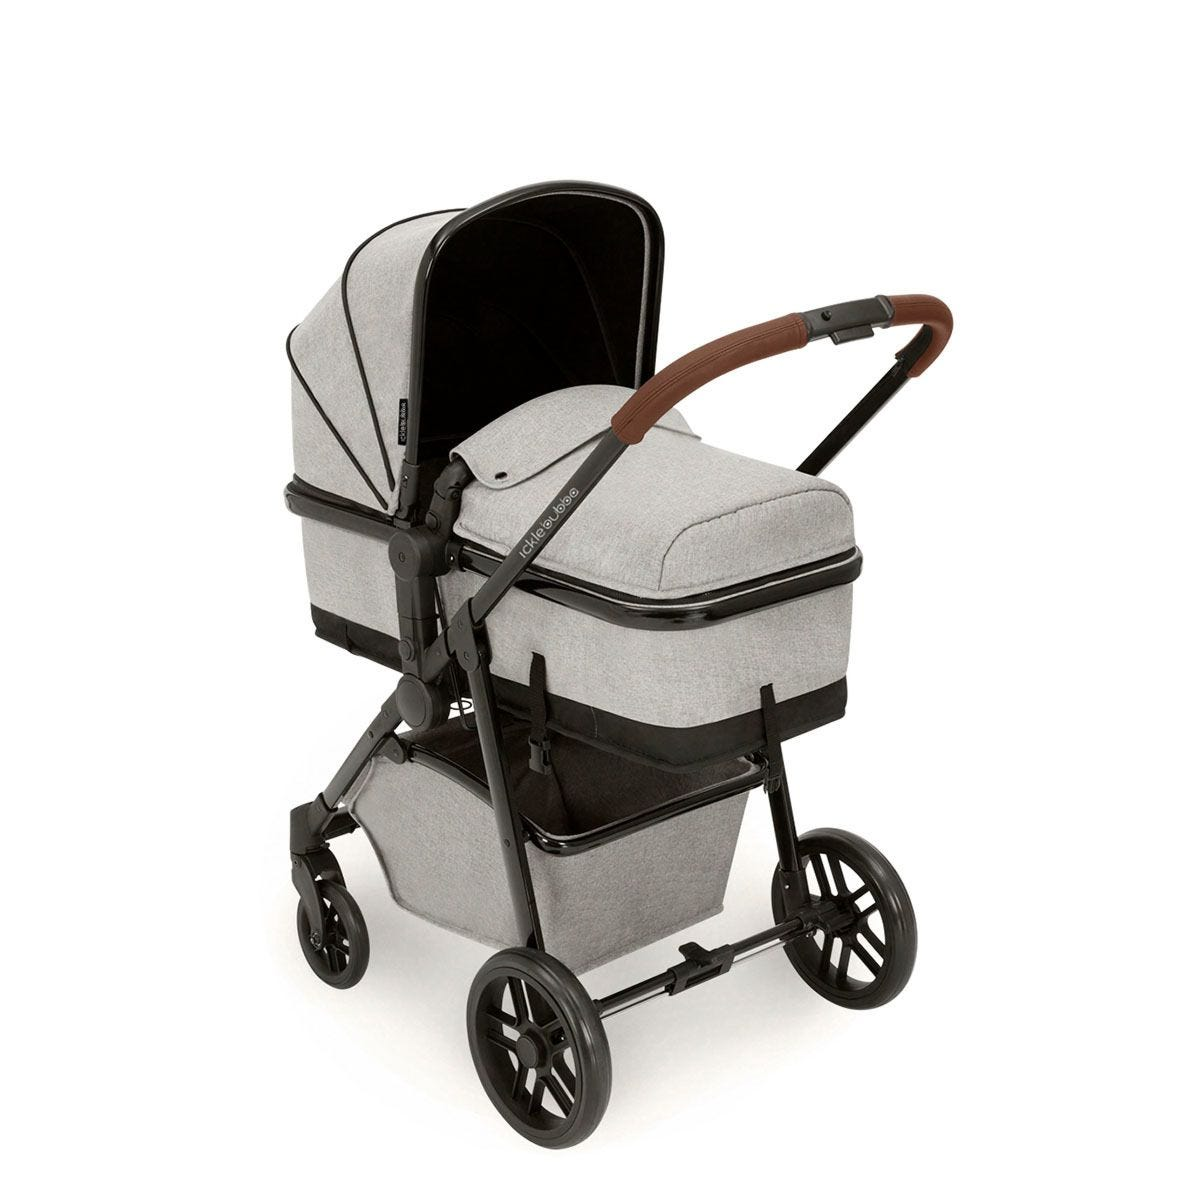 Ickle Bubba Moon 3 in 1 Travel System ISOFIX - Silver Grey on Black with Tan Handles